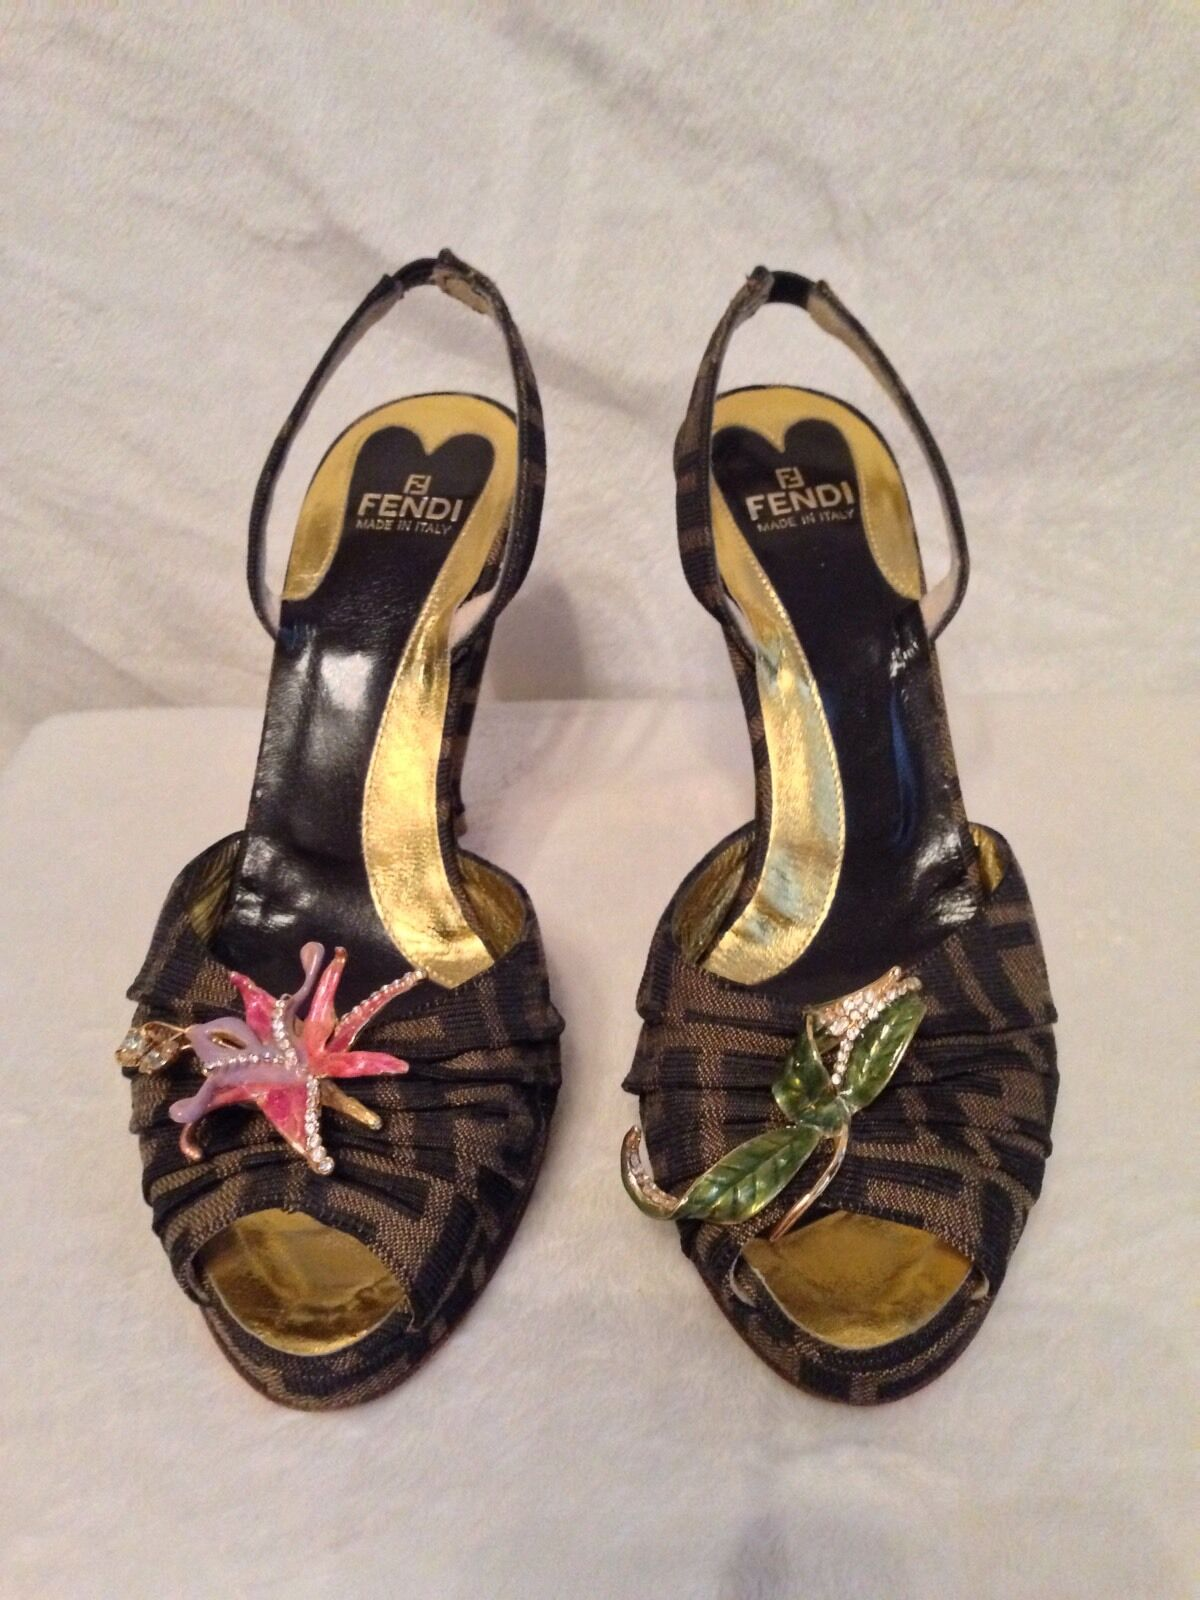 FENDI Dark Brown Monogram ENAMEL FLOWER Shoes Size 38.5, 8.5